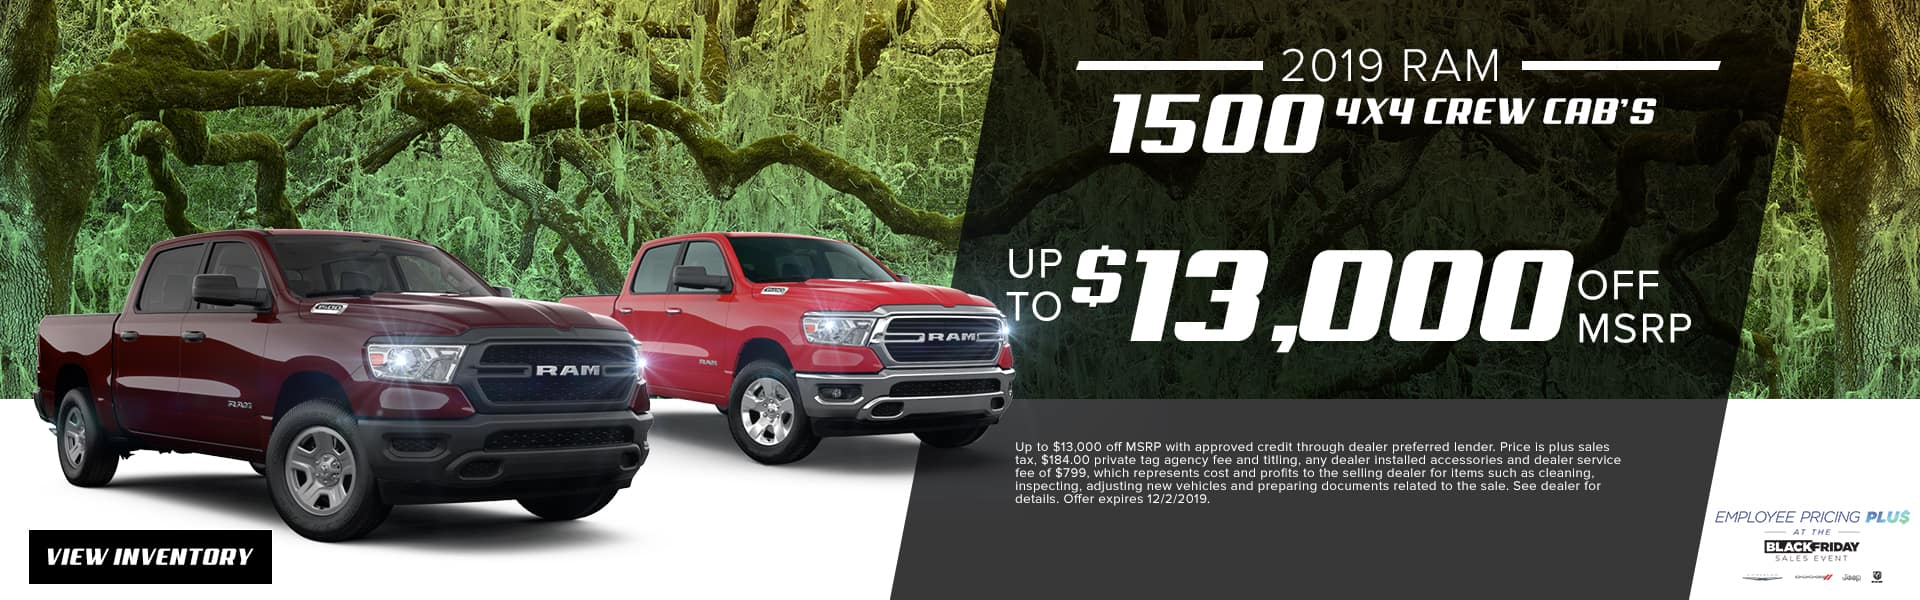 2019 RAM 1500 4x4 Crew Cabs | Up To $13,000 Off MSRP